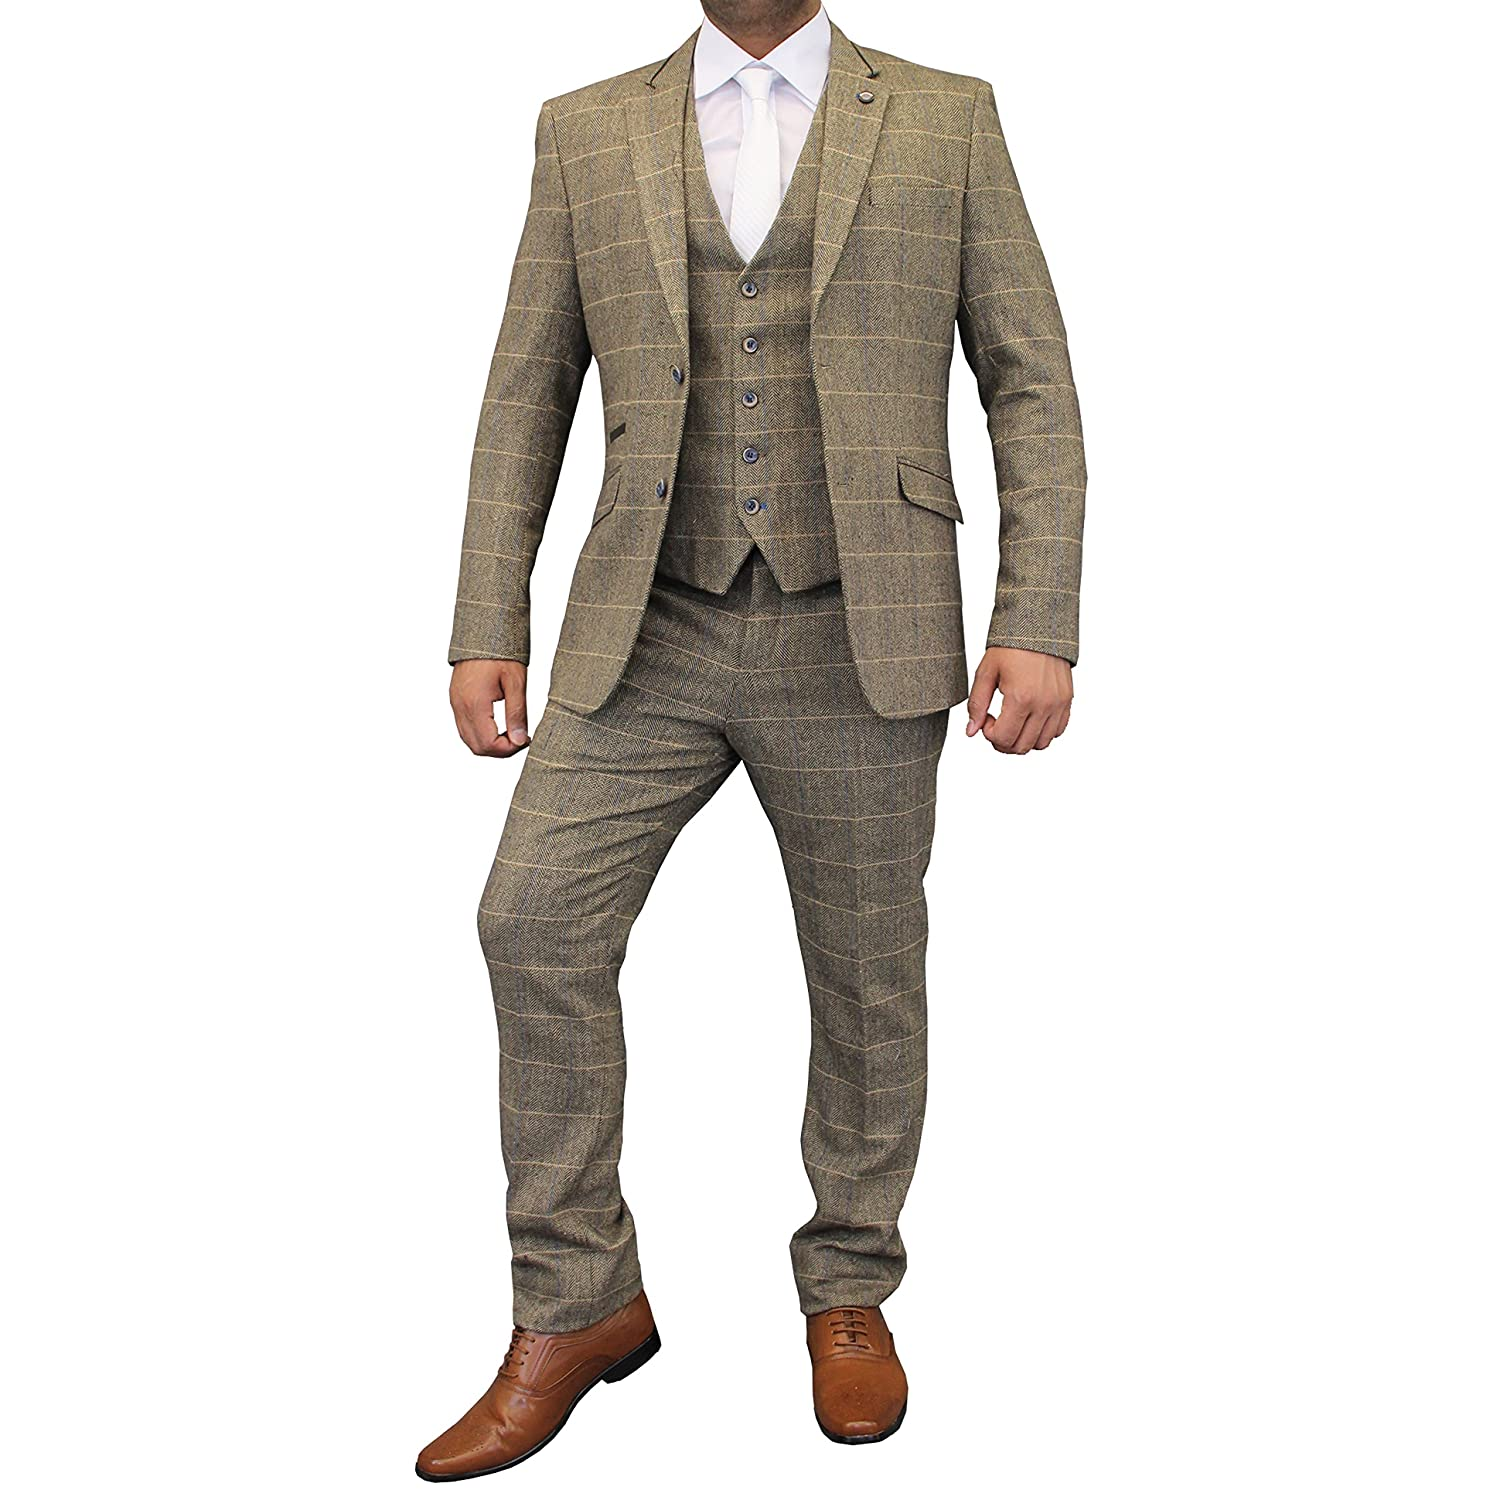 Steampunk Kids Costumes | Girl, Boy, Baby, Toddler Creon Previs Boys Wool Mix Suits 3 Piece Tweed Cavani Blazer Waistcoat Trouser £59.98 AT vintagedancer.com